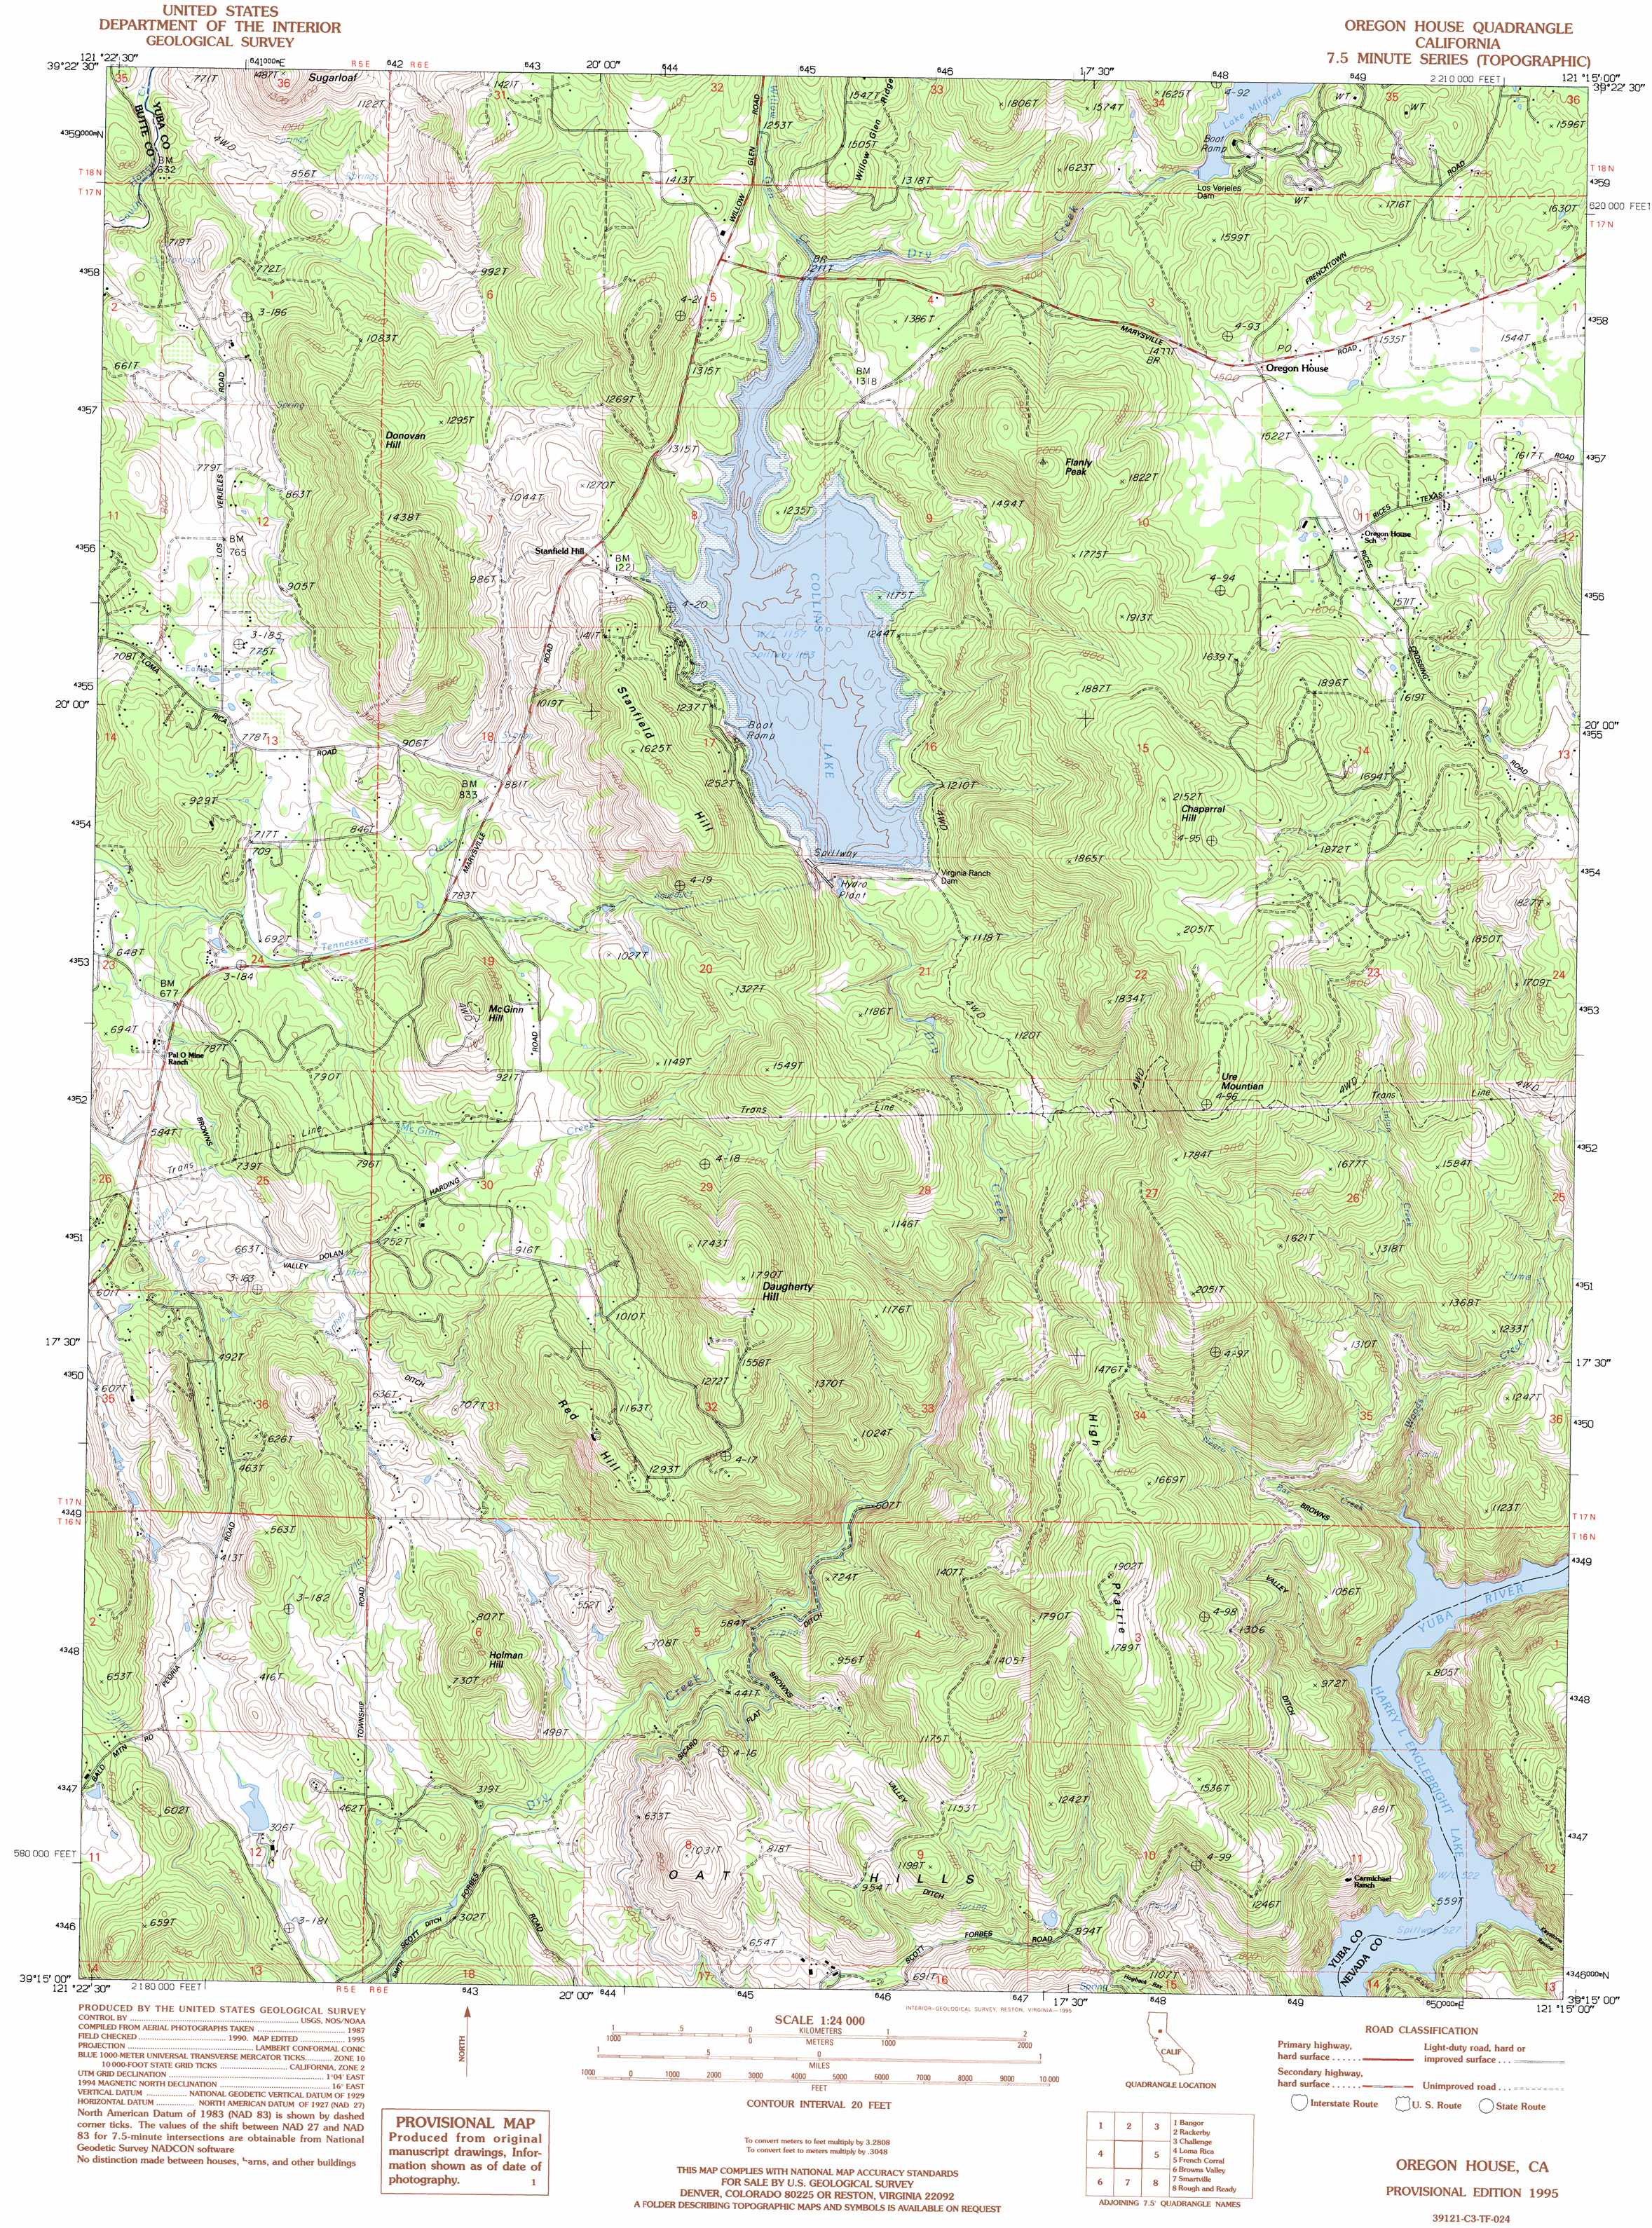 Oregon House Topographic Map CA USGS Topo Quad C - Topographical map of oregon